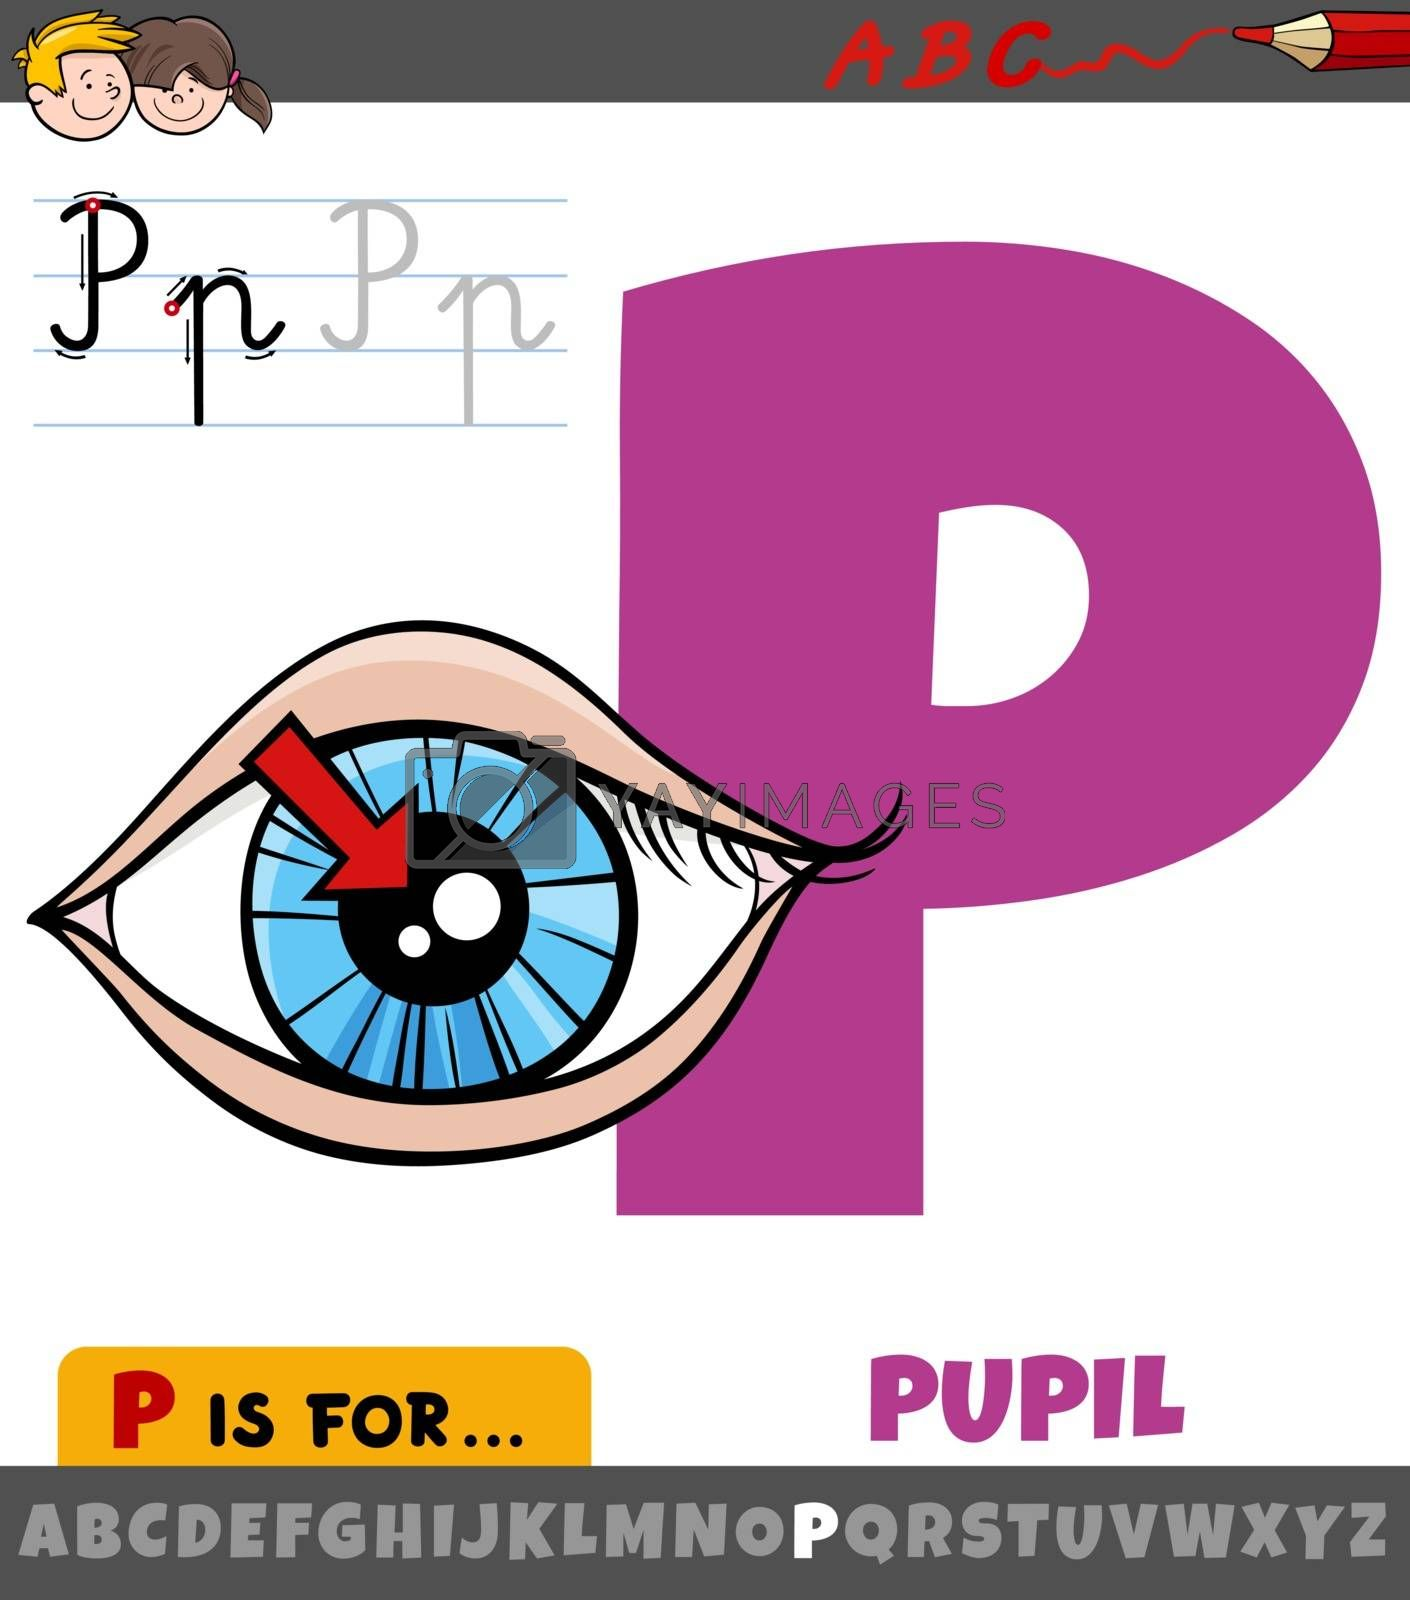 Educational cartoon illustration of letter P from alphabet with pupil of the eye for children